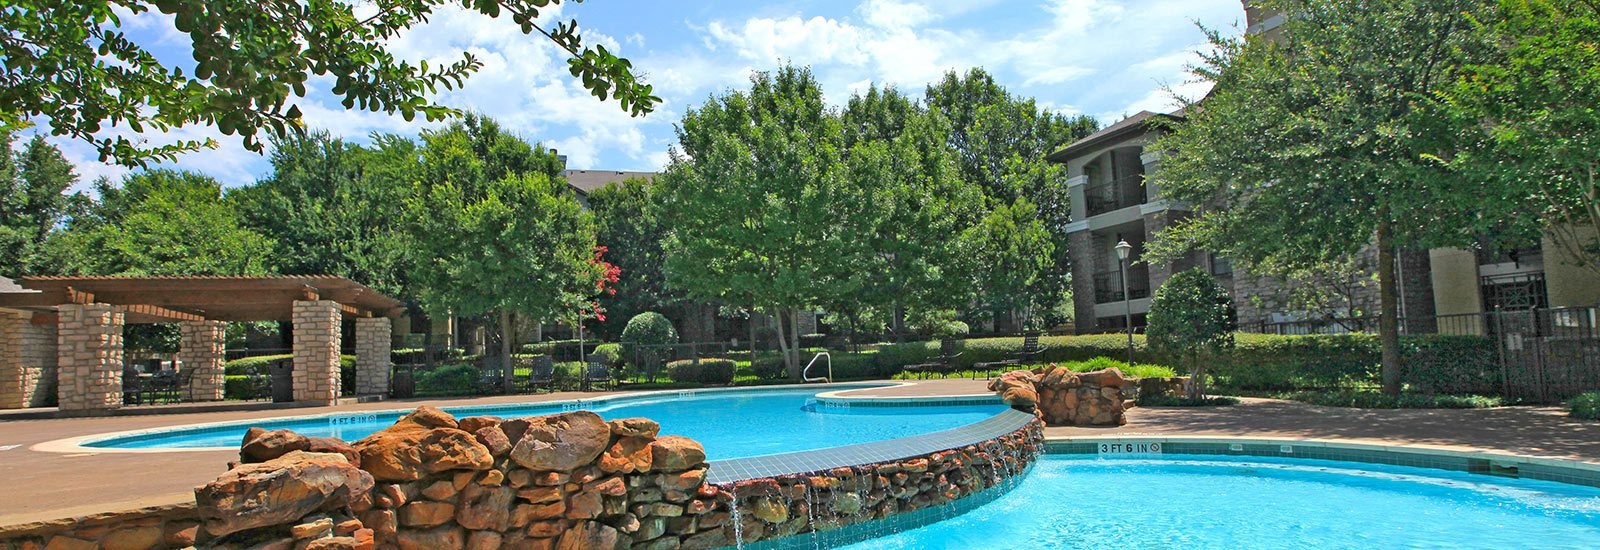 North Garland Tx Apartments For Rent Stoneleigh On Spring Creek